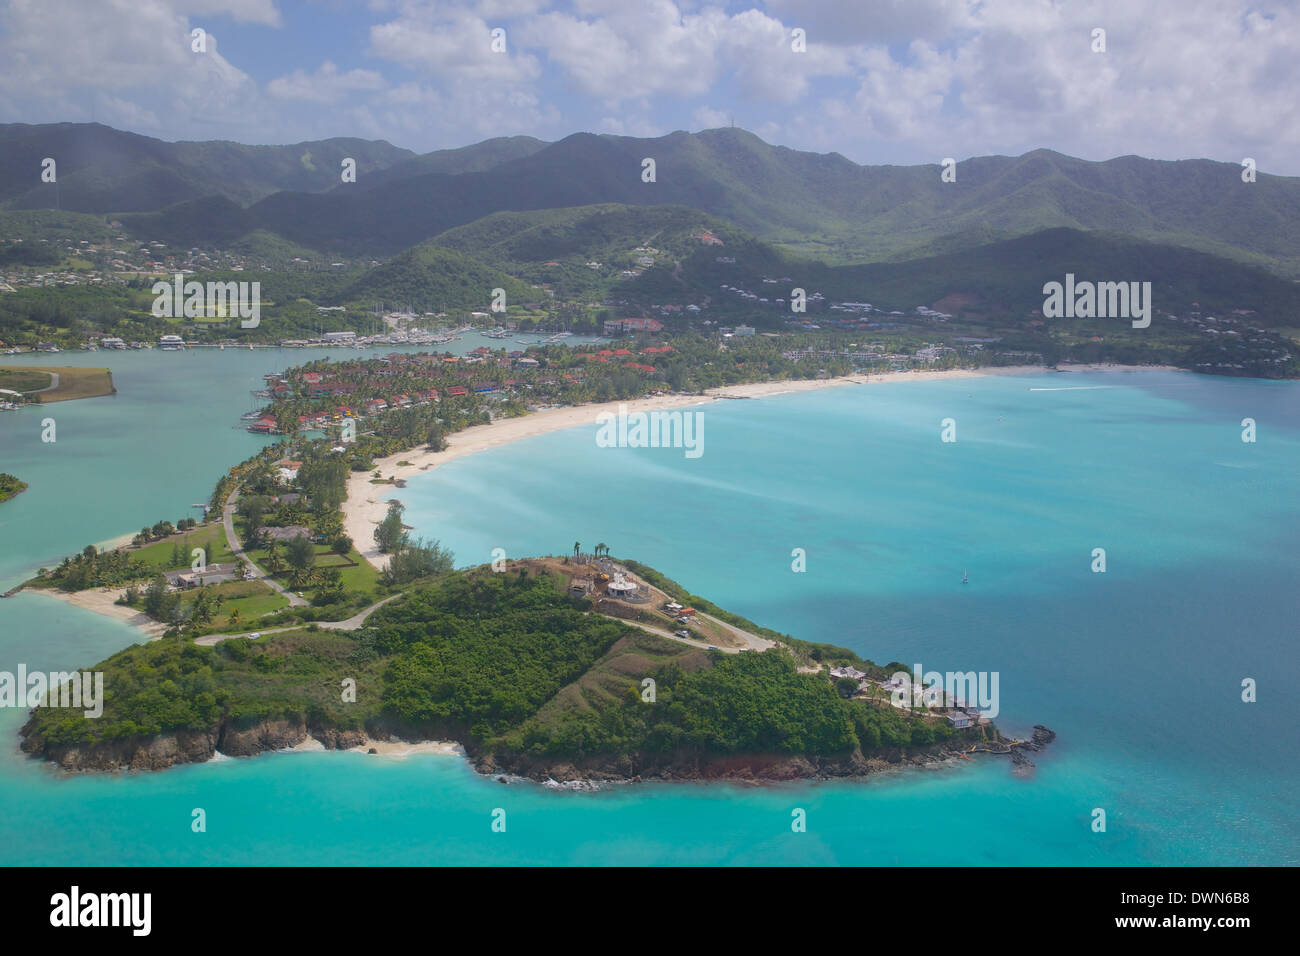 View over Jolly Harbour, Antigua, Leeward Islands, West Indies, Caribbean, Central America Stock Photo